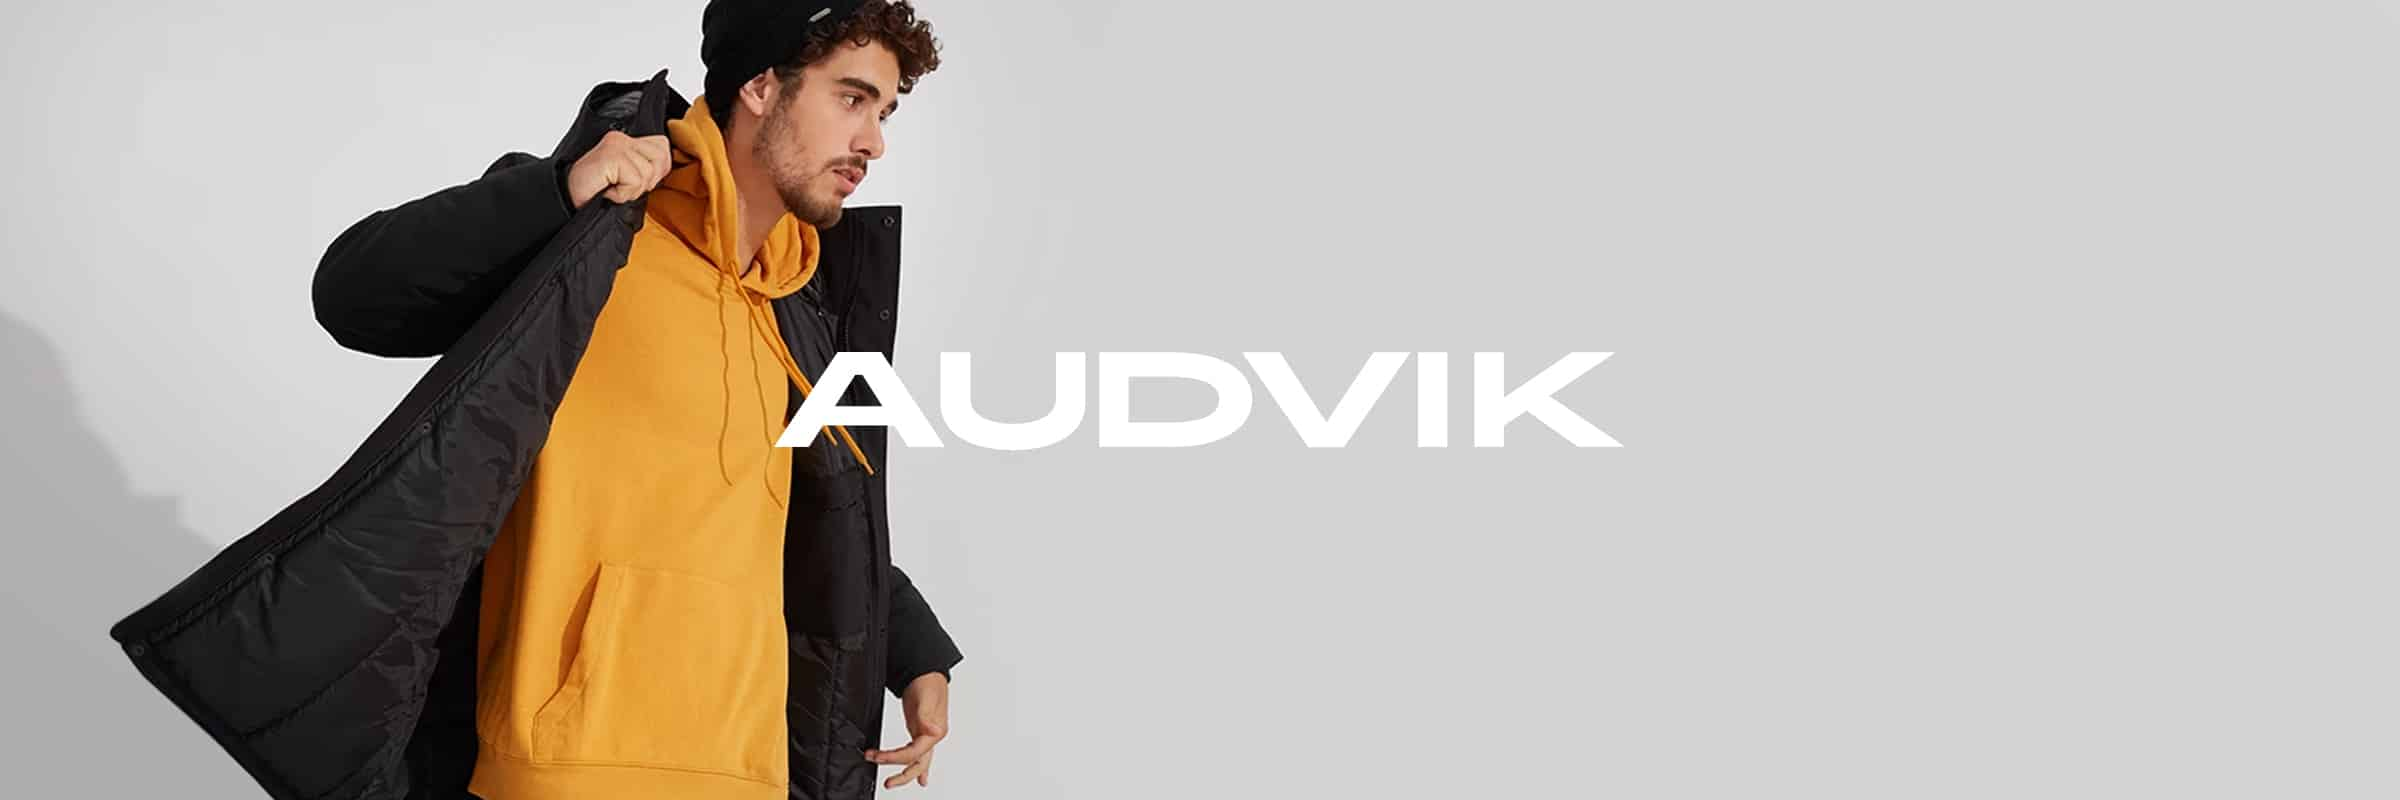 Audvik Winter Jackets – Family-Made in Montreal